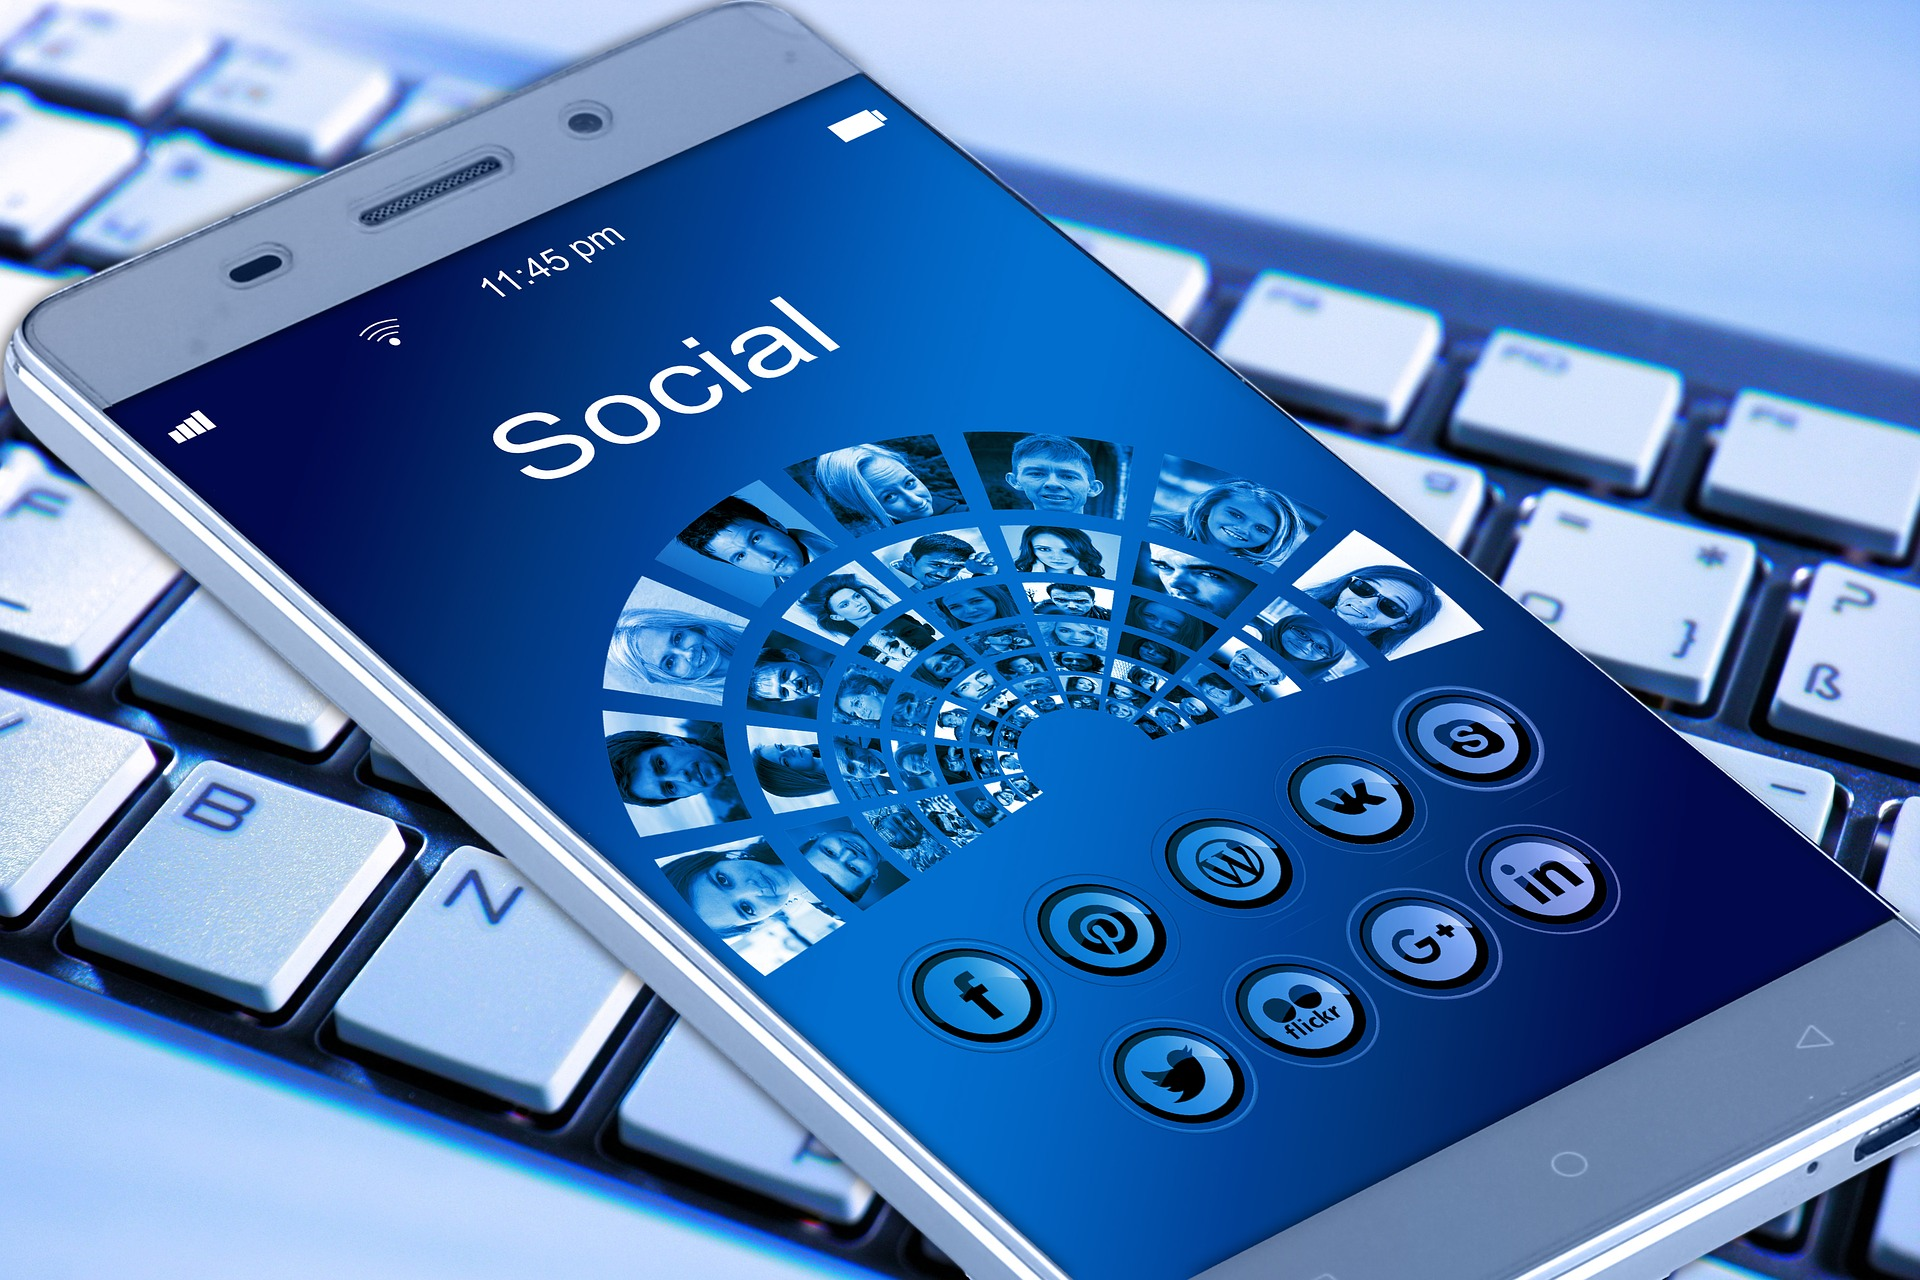 Top 5 Most Overlooked Social Media Sites